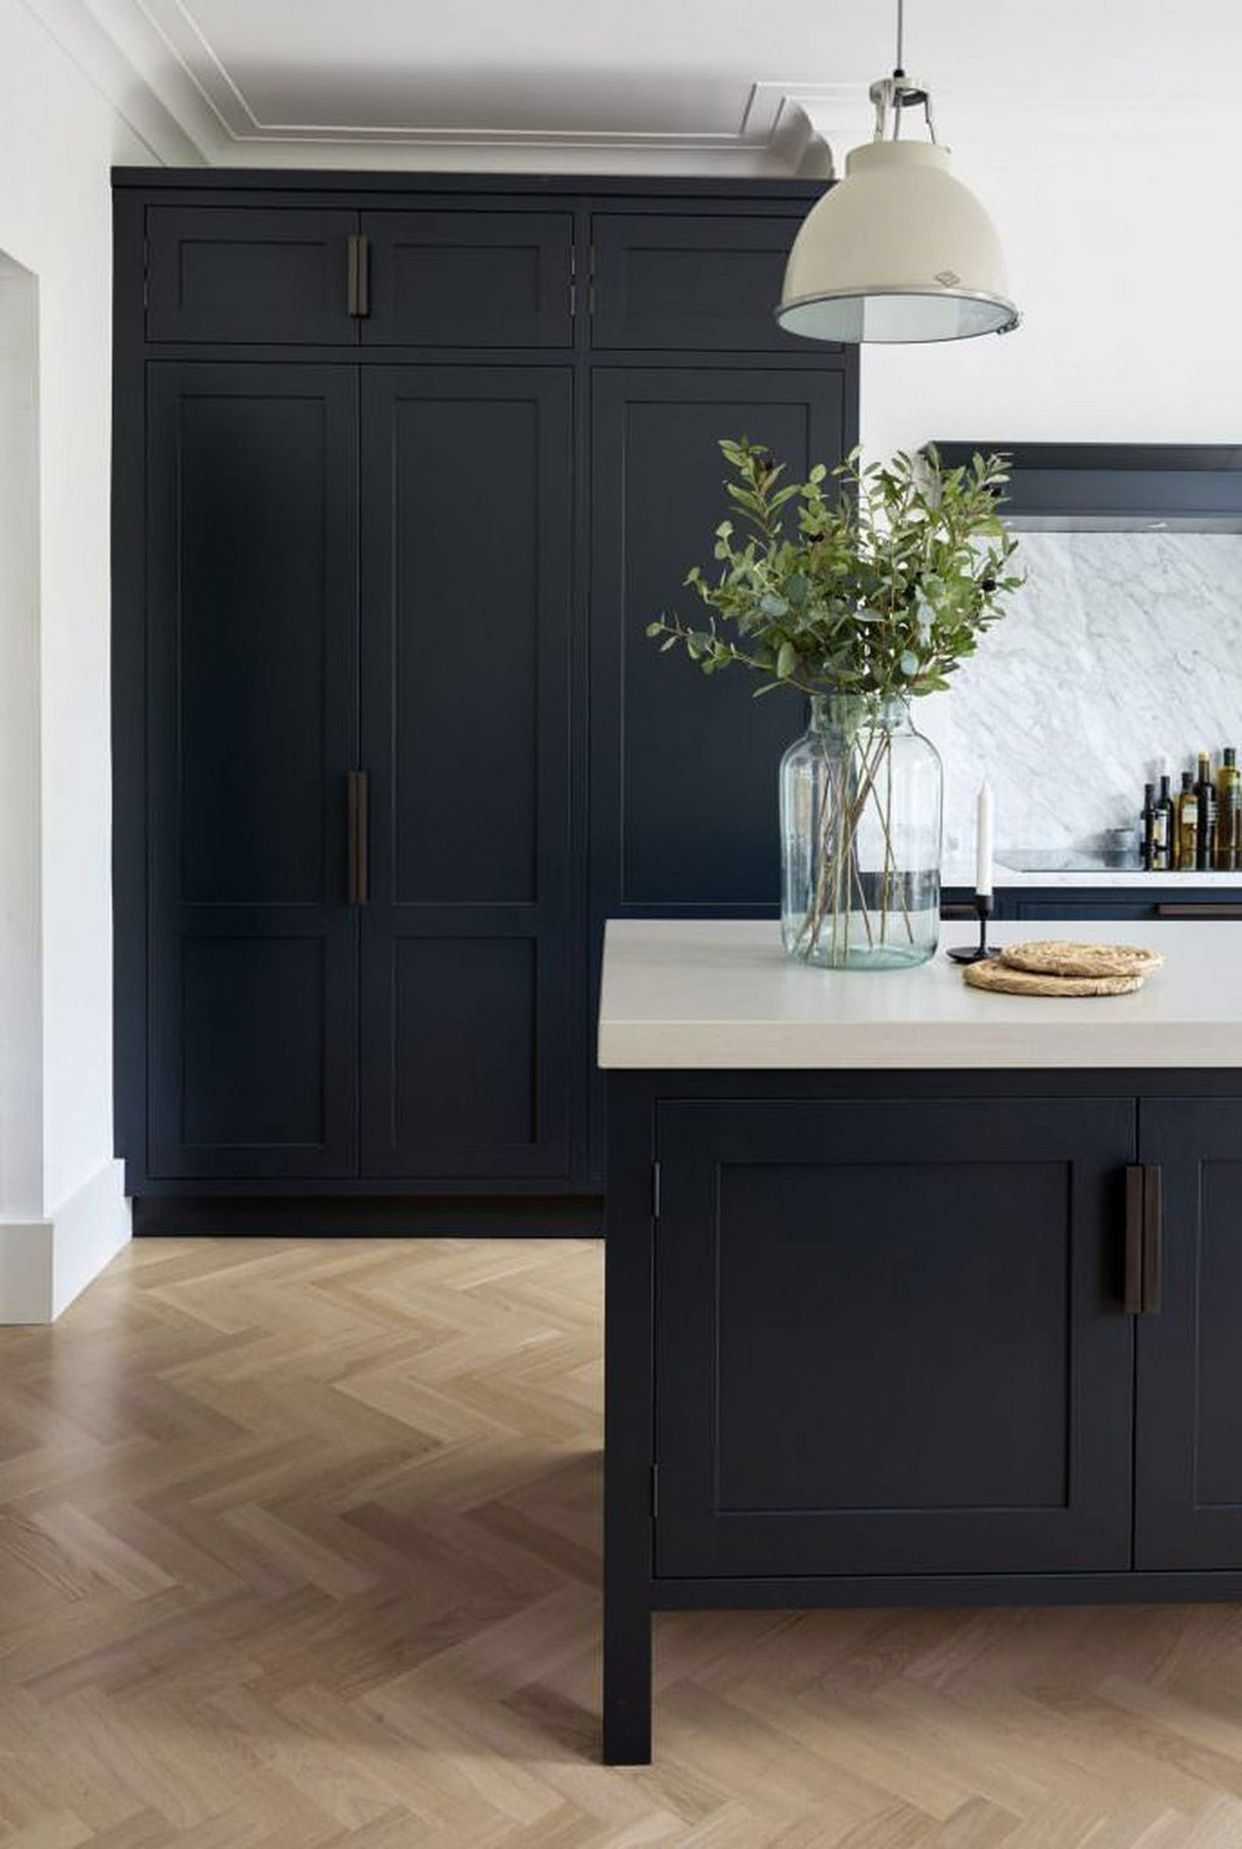 Pin by Amanda Stonehouse on Kitchen Kitchen trends, Home